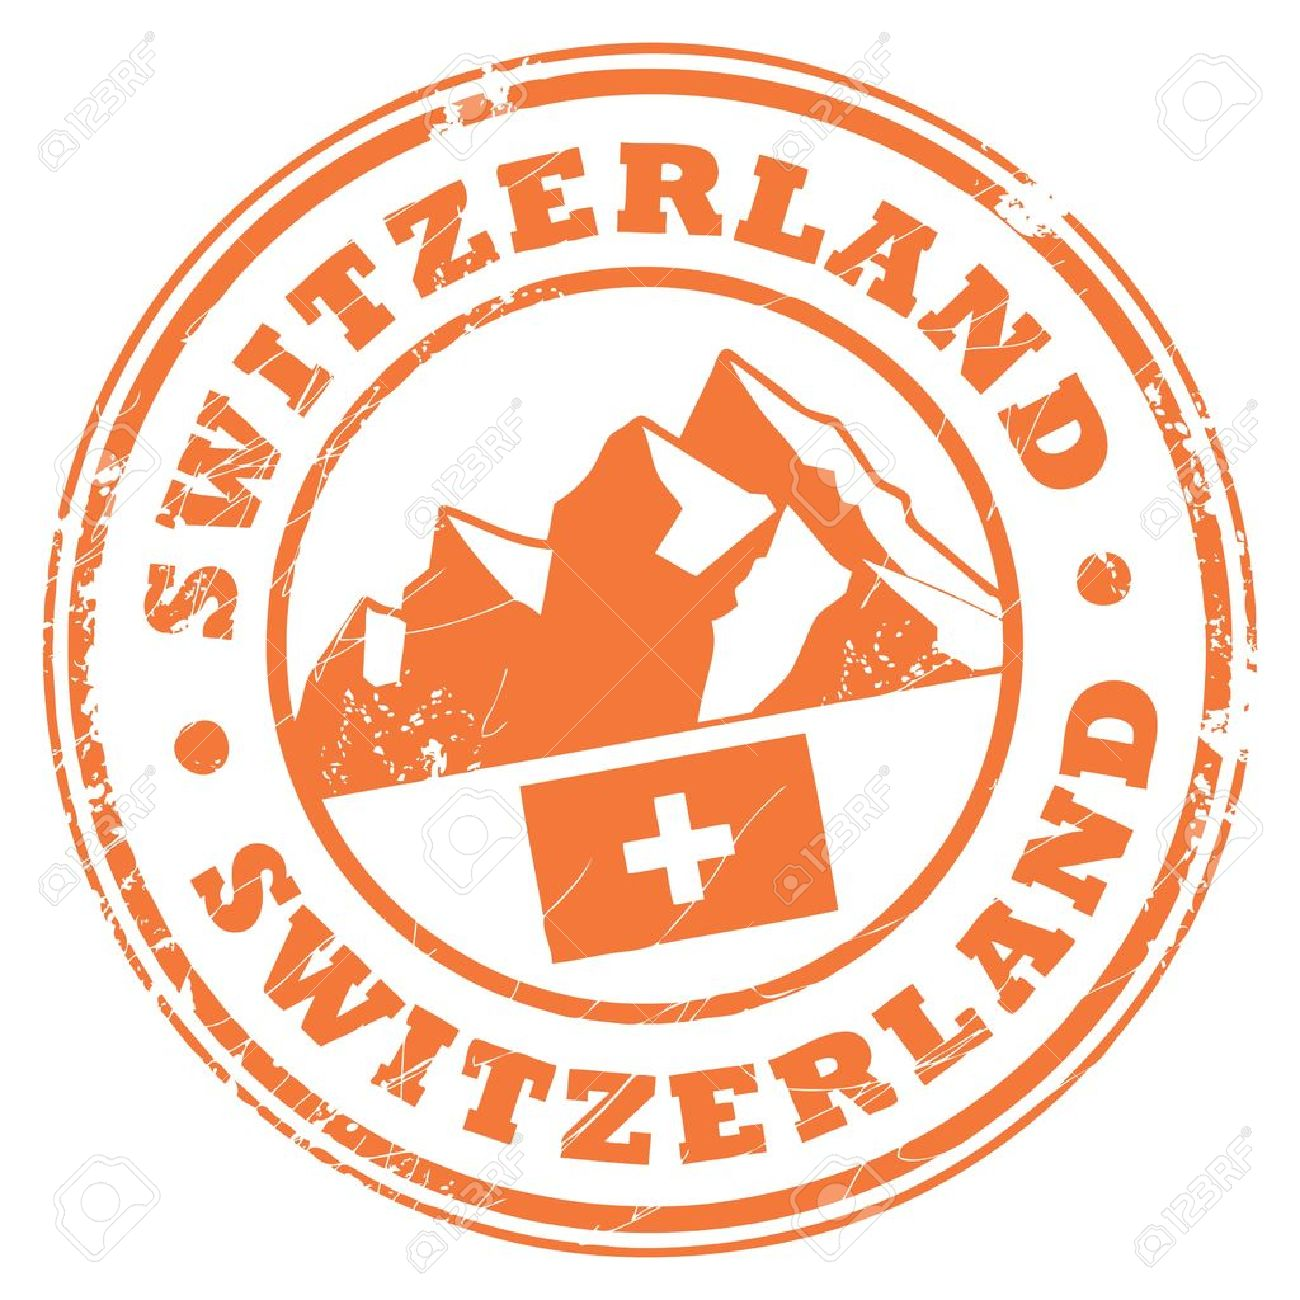 Swiss Cross Images & Stock Pictures. Royalty Free Swiss Cross.